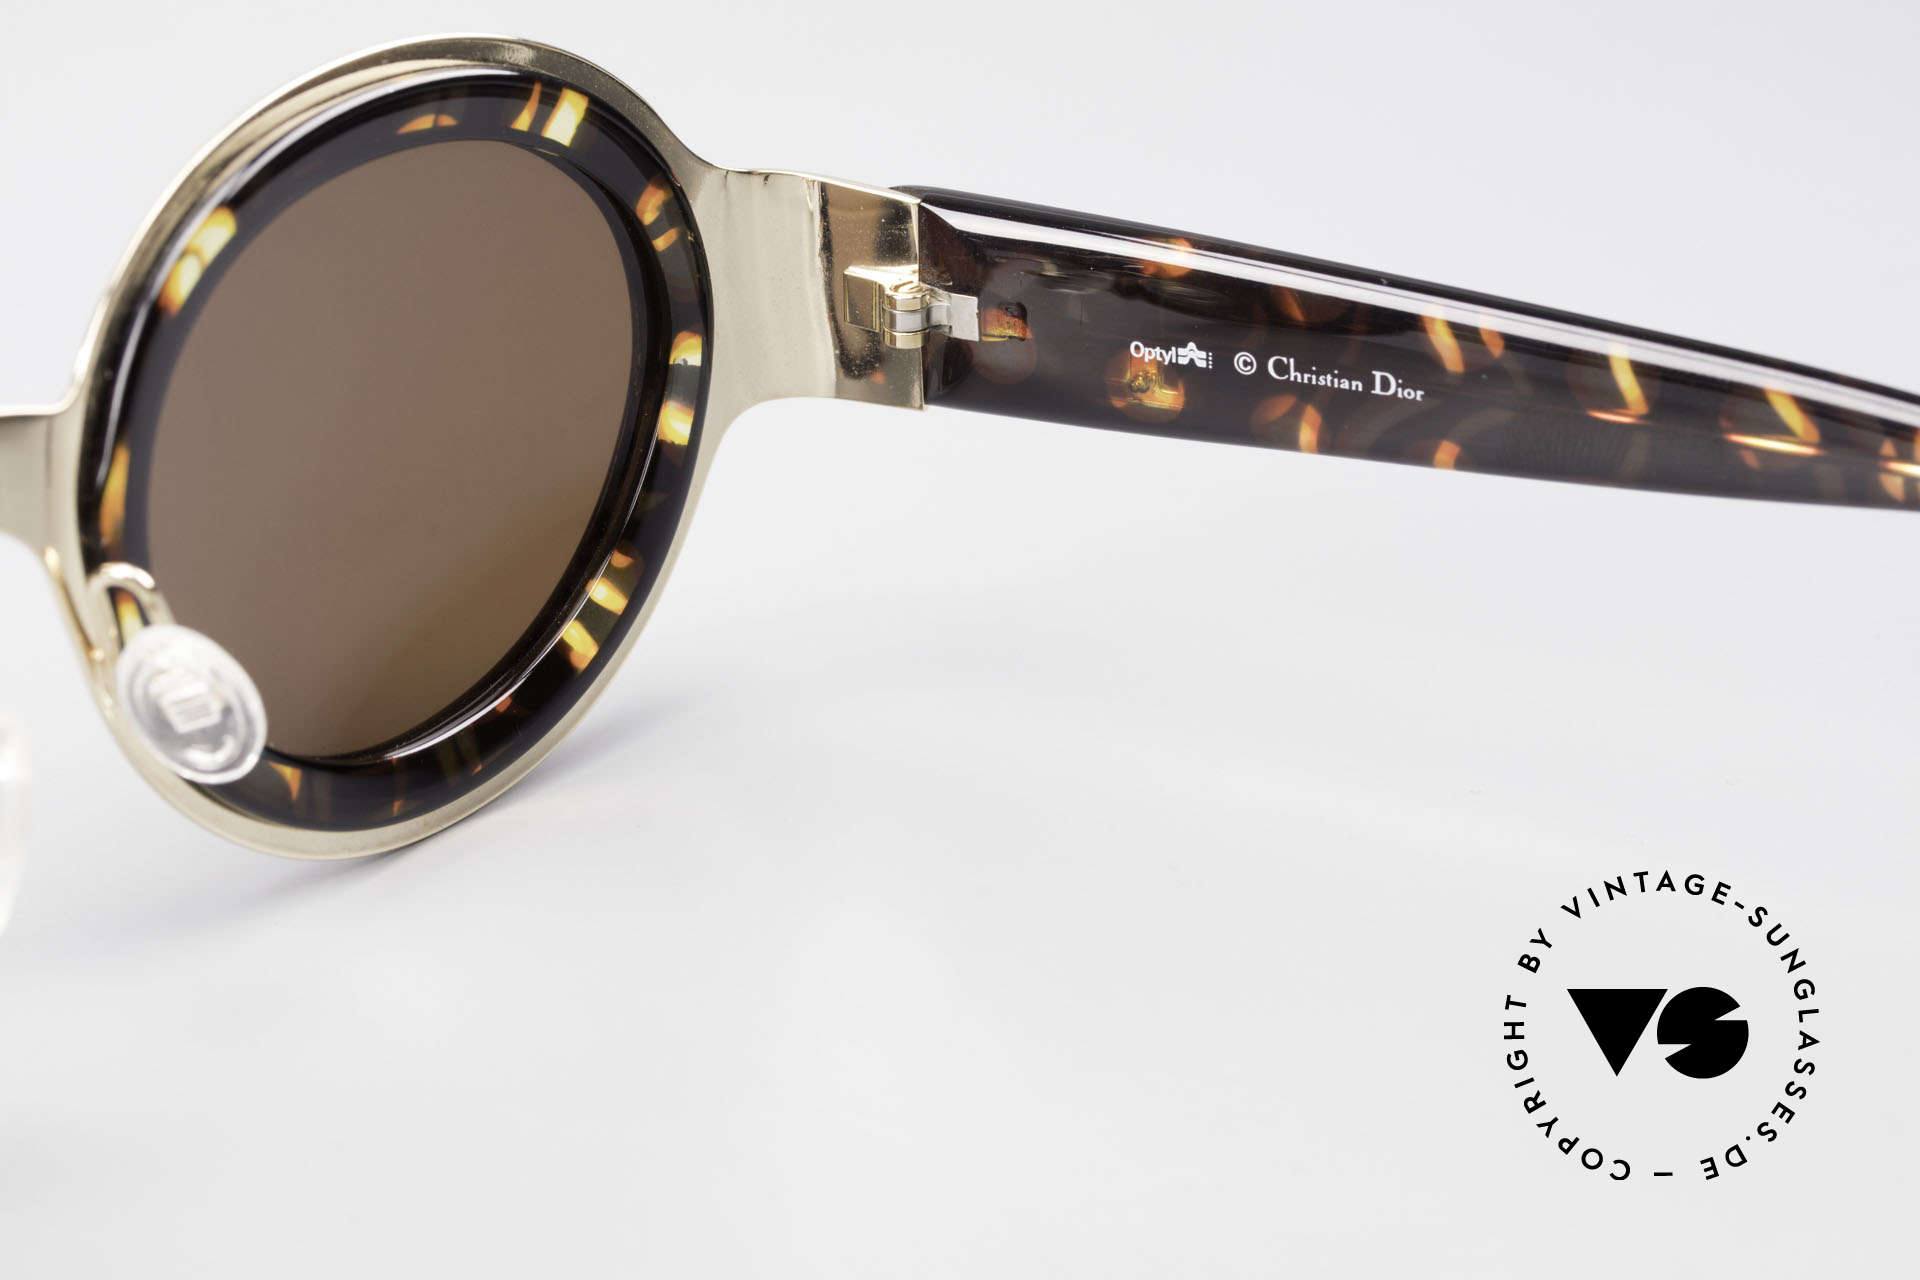 Christian Dior 2037 Round Ladies Sunglasses 90's, Size: large, Made for Women